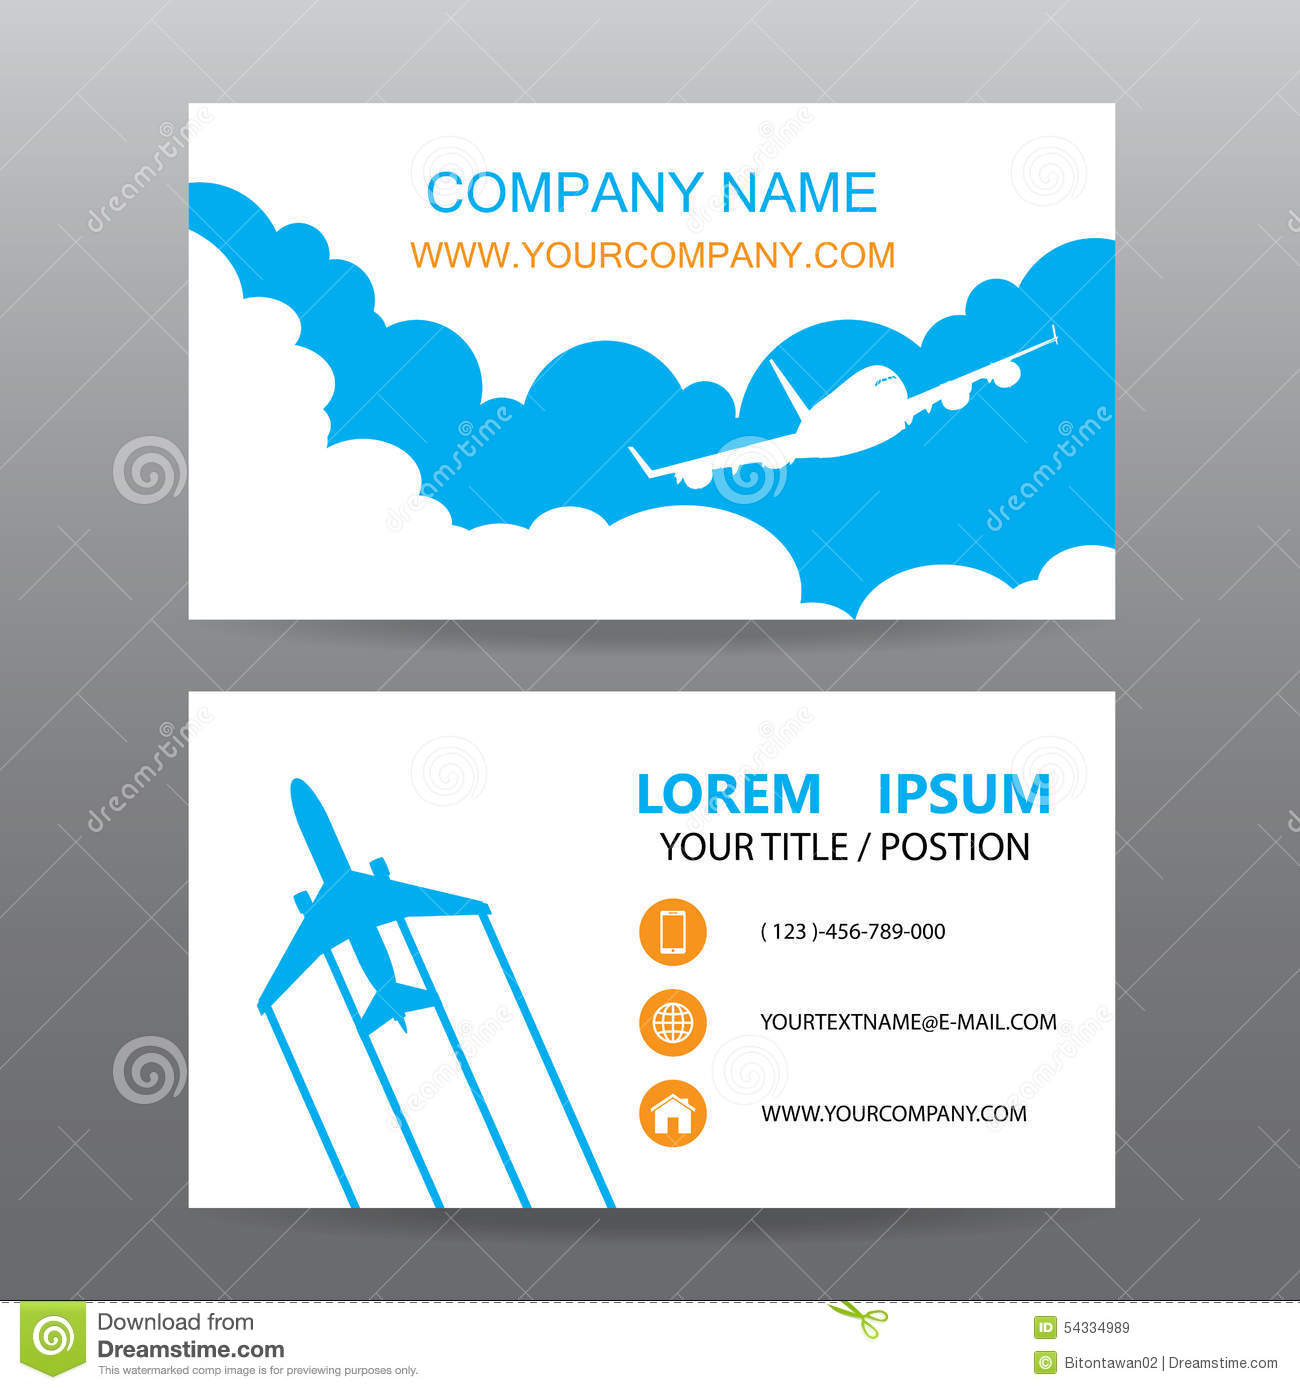 Business Card Vector Background, Guide Tour Companies Stock Vector ...